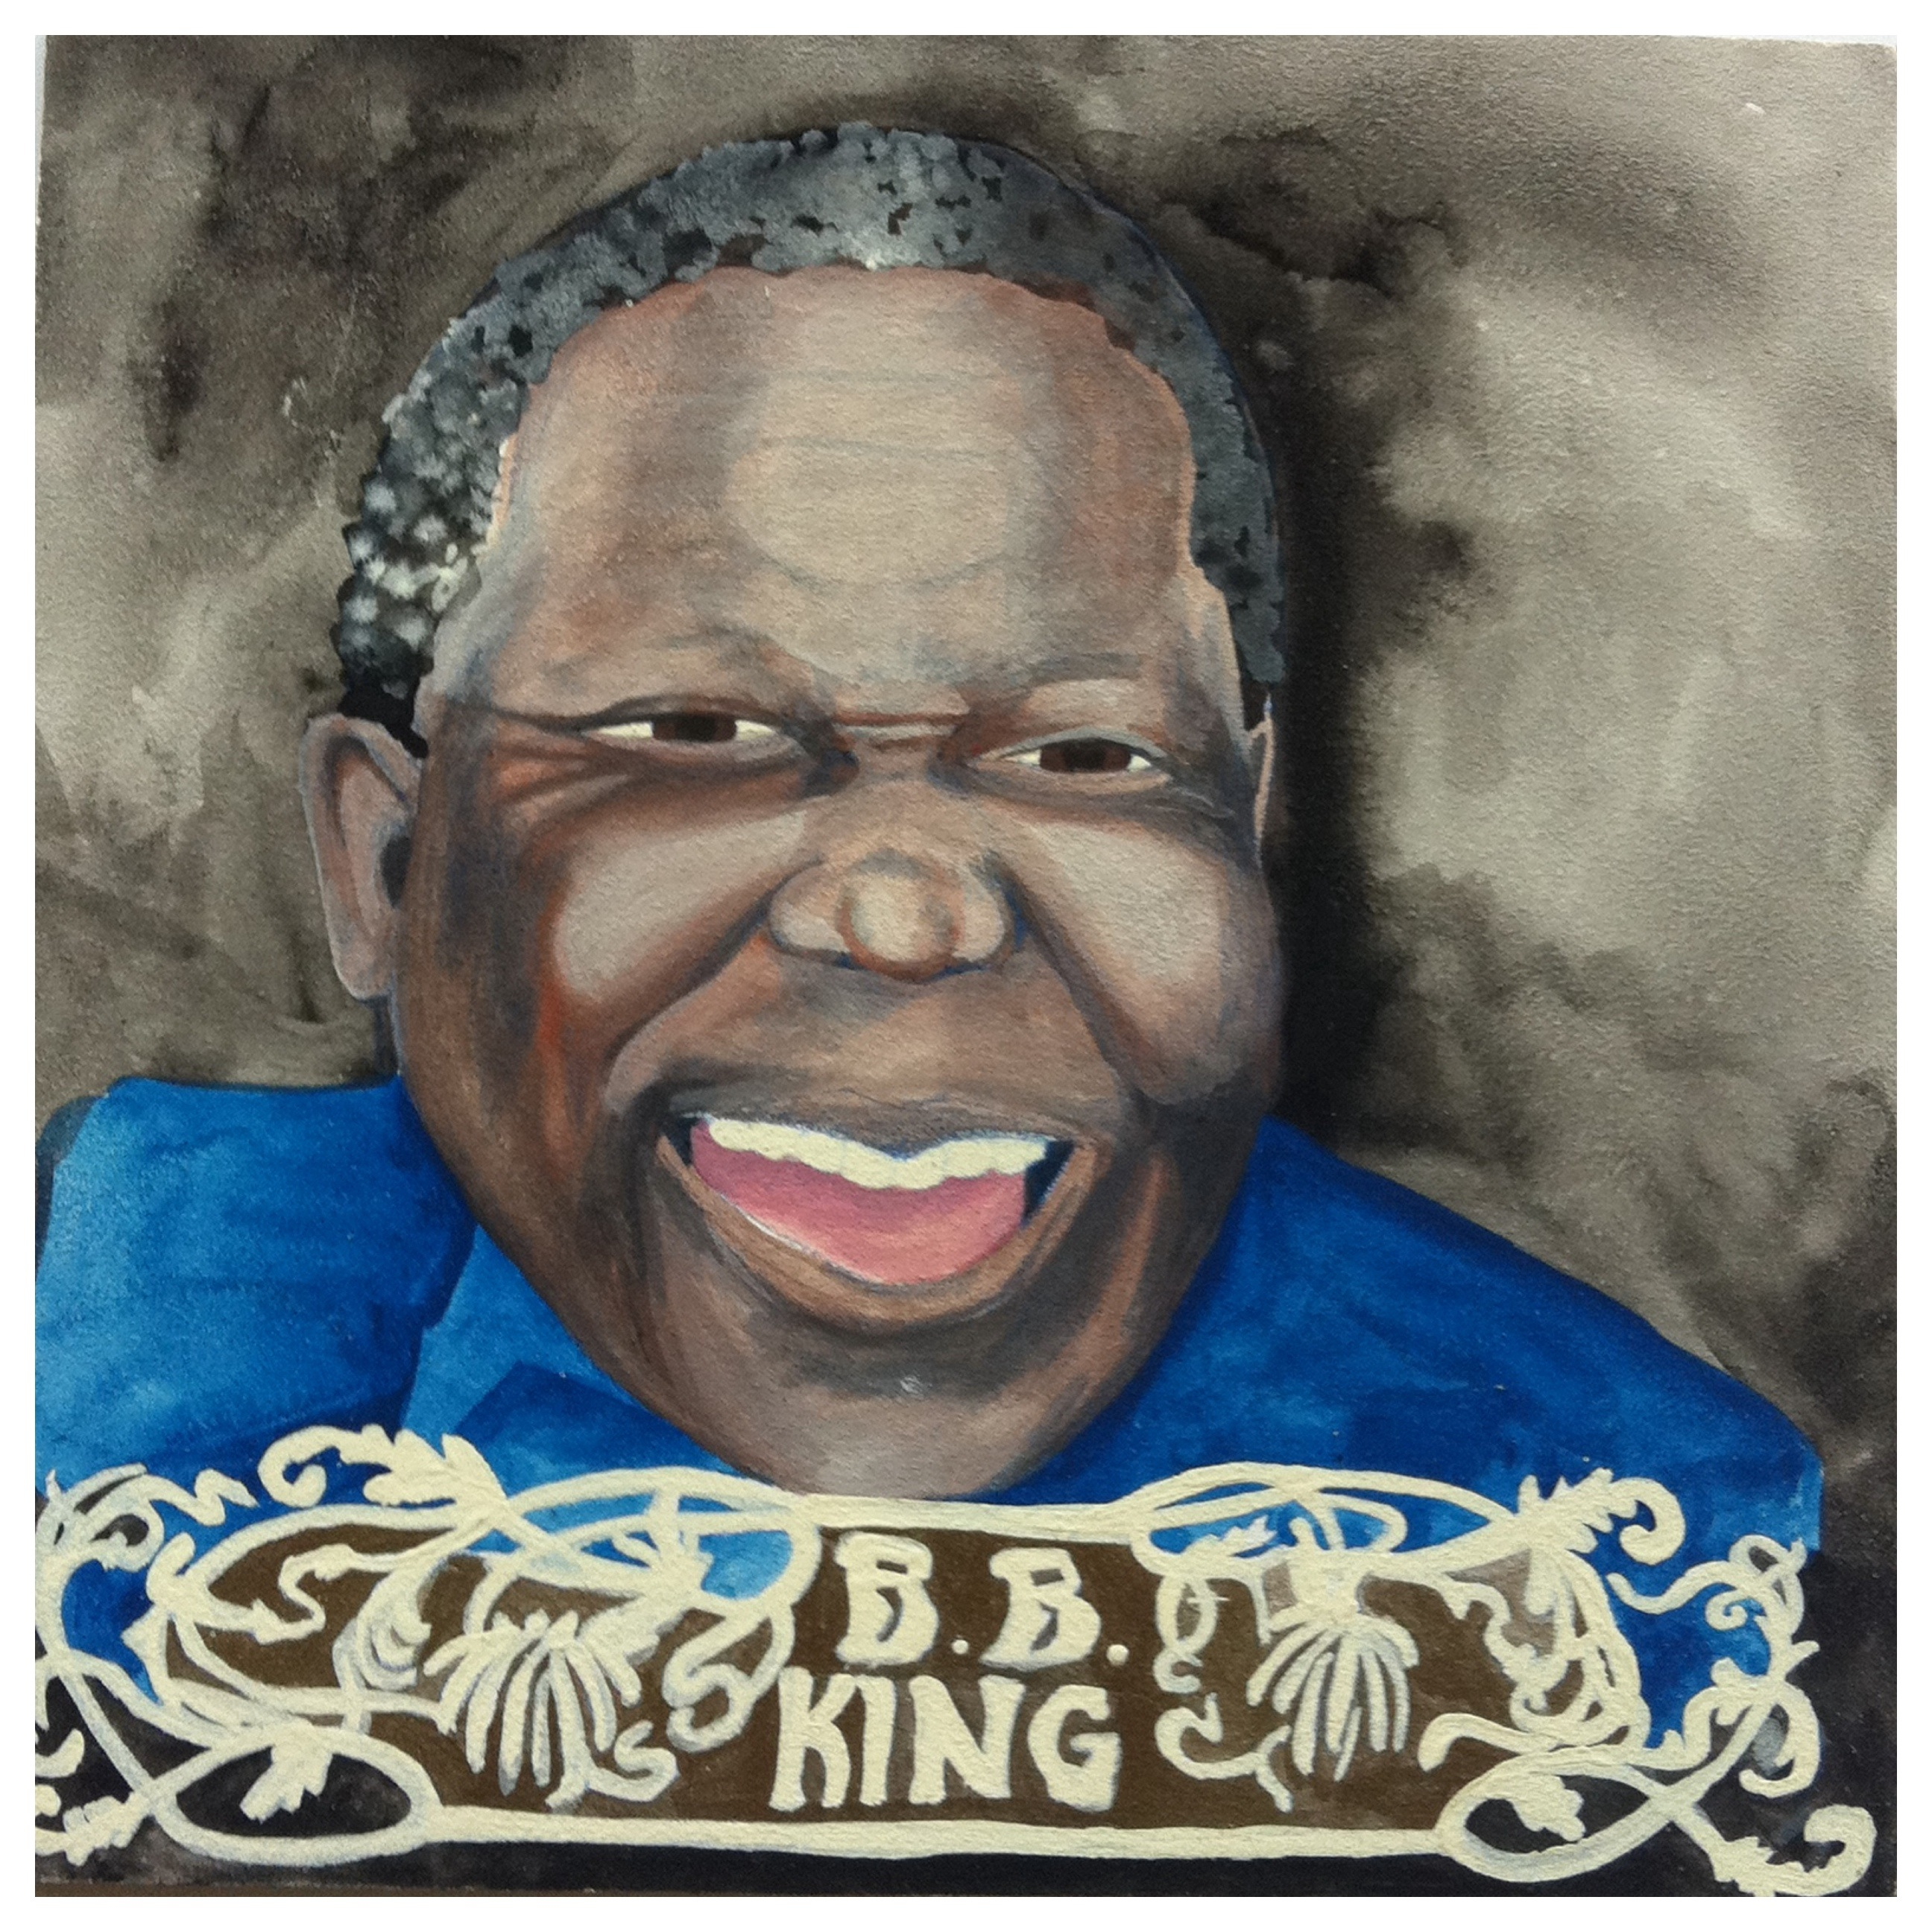 100 Southerners portraits by Lydia Walls: BB King